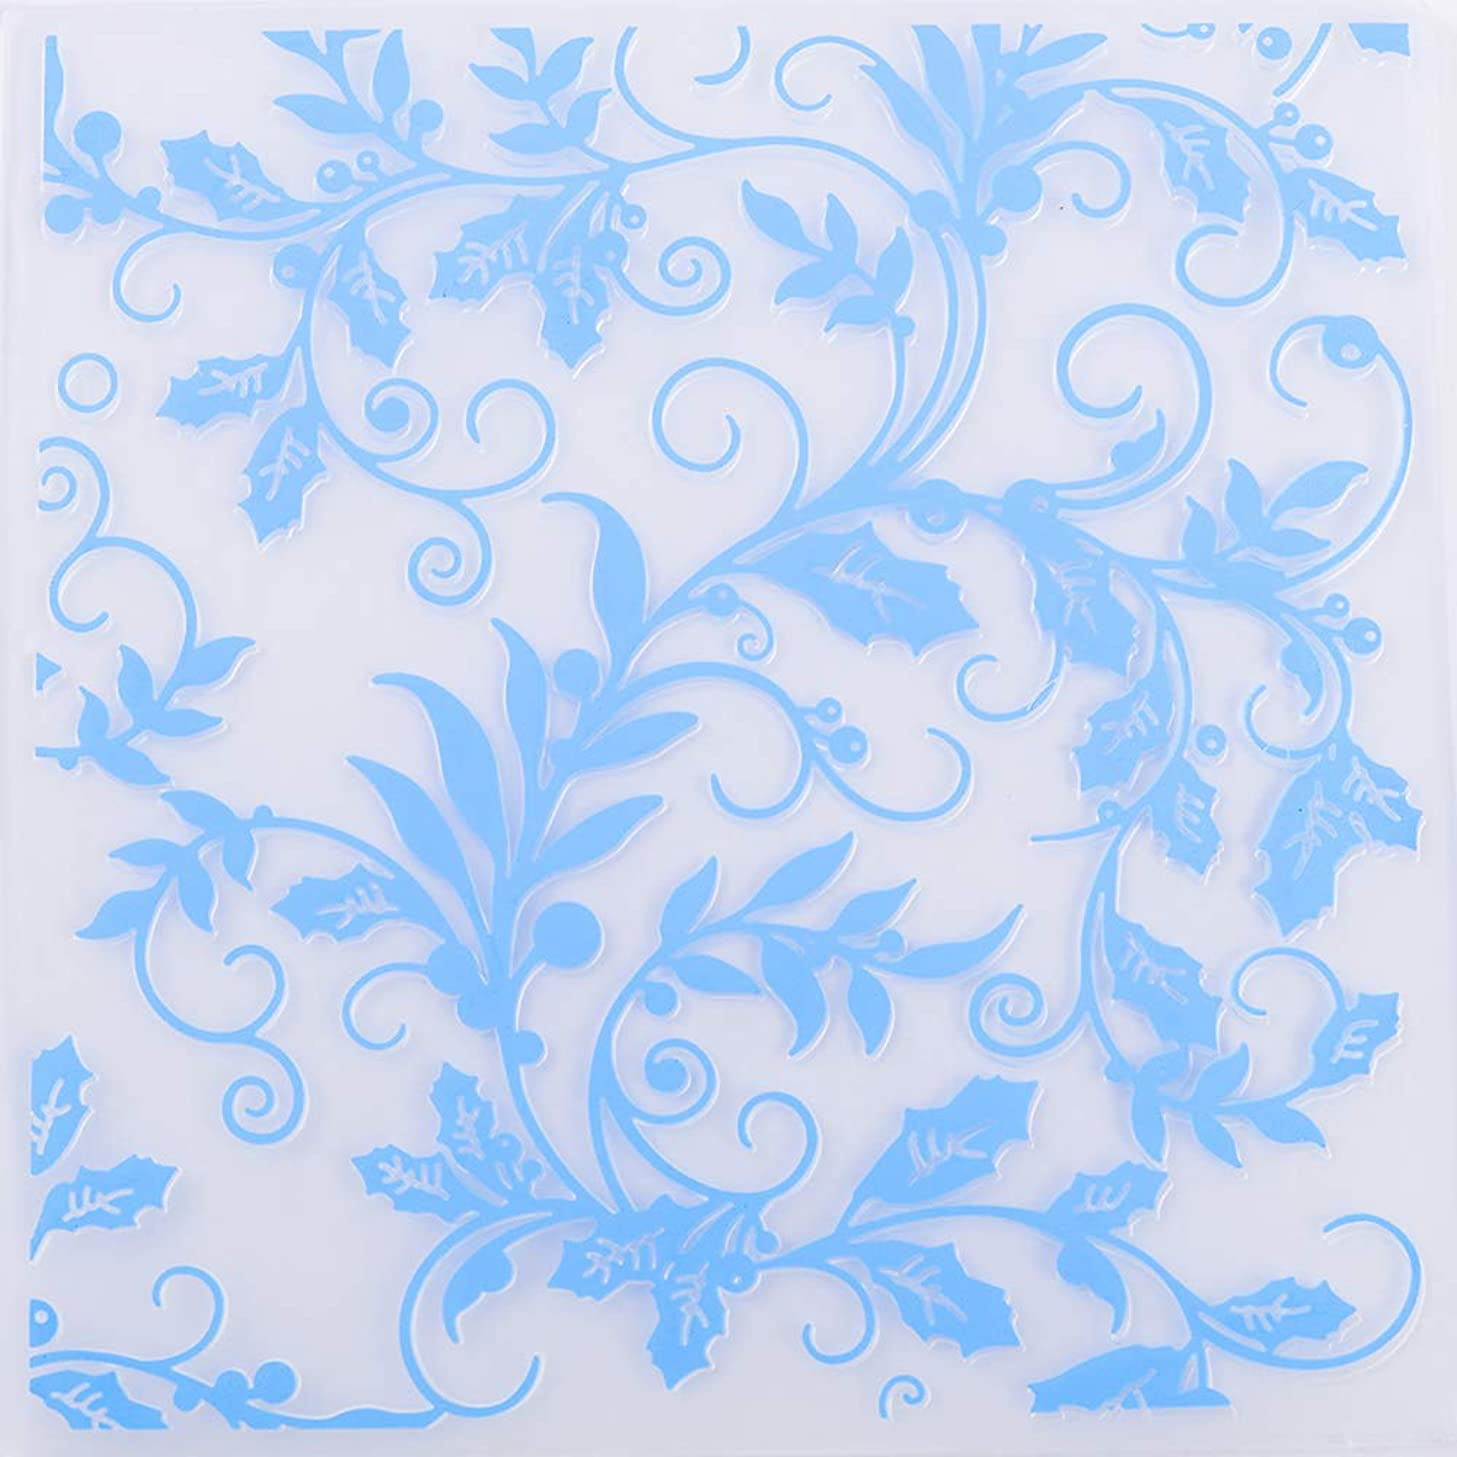 MaGuo Leaves and Flower Plastic Embossing Folder Template Floral Flourish for Card Making Scrapbooking DIY Crafts